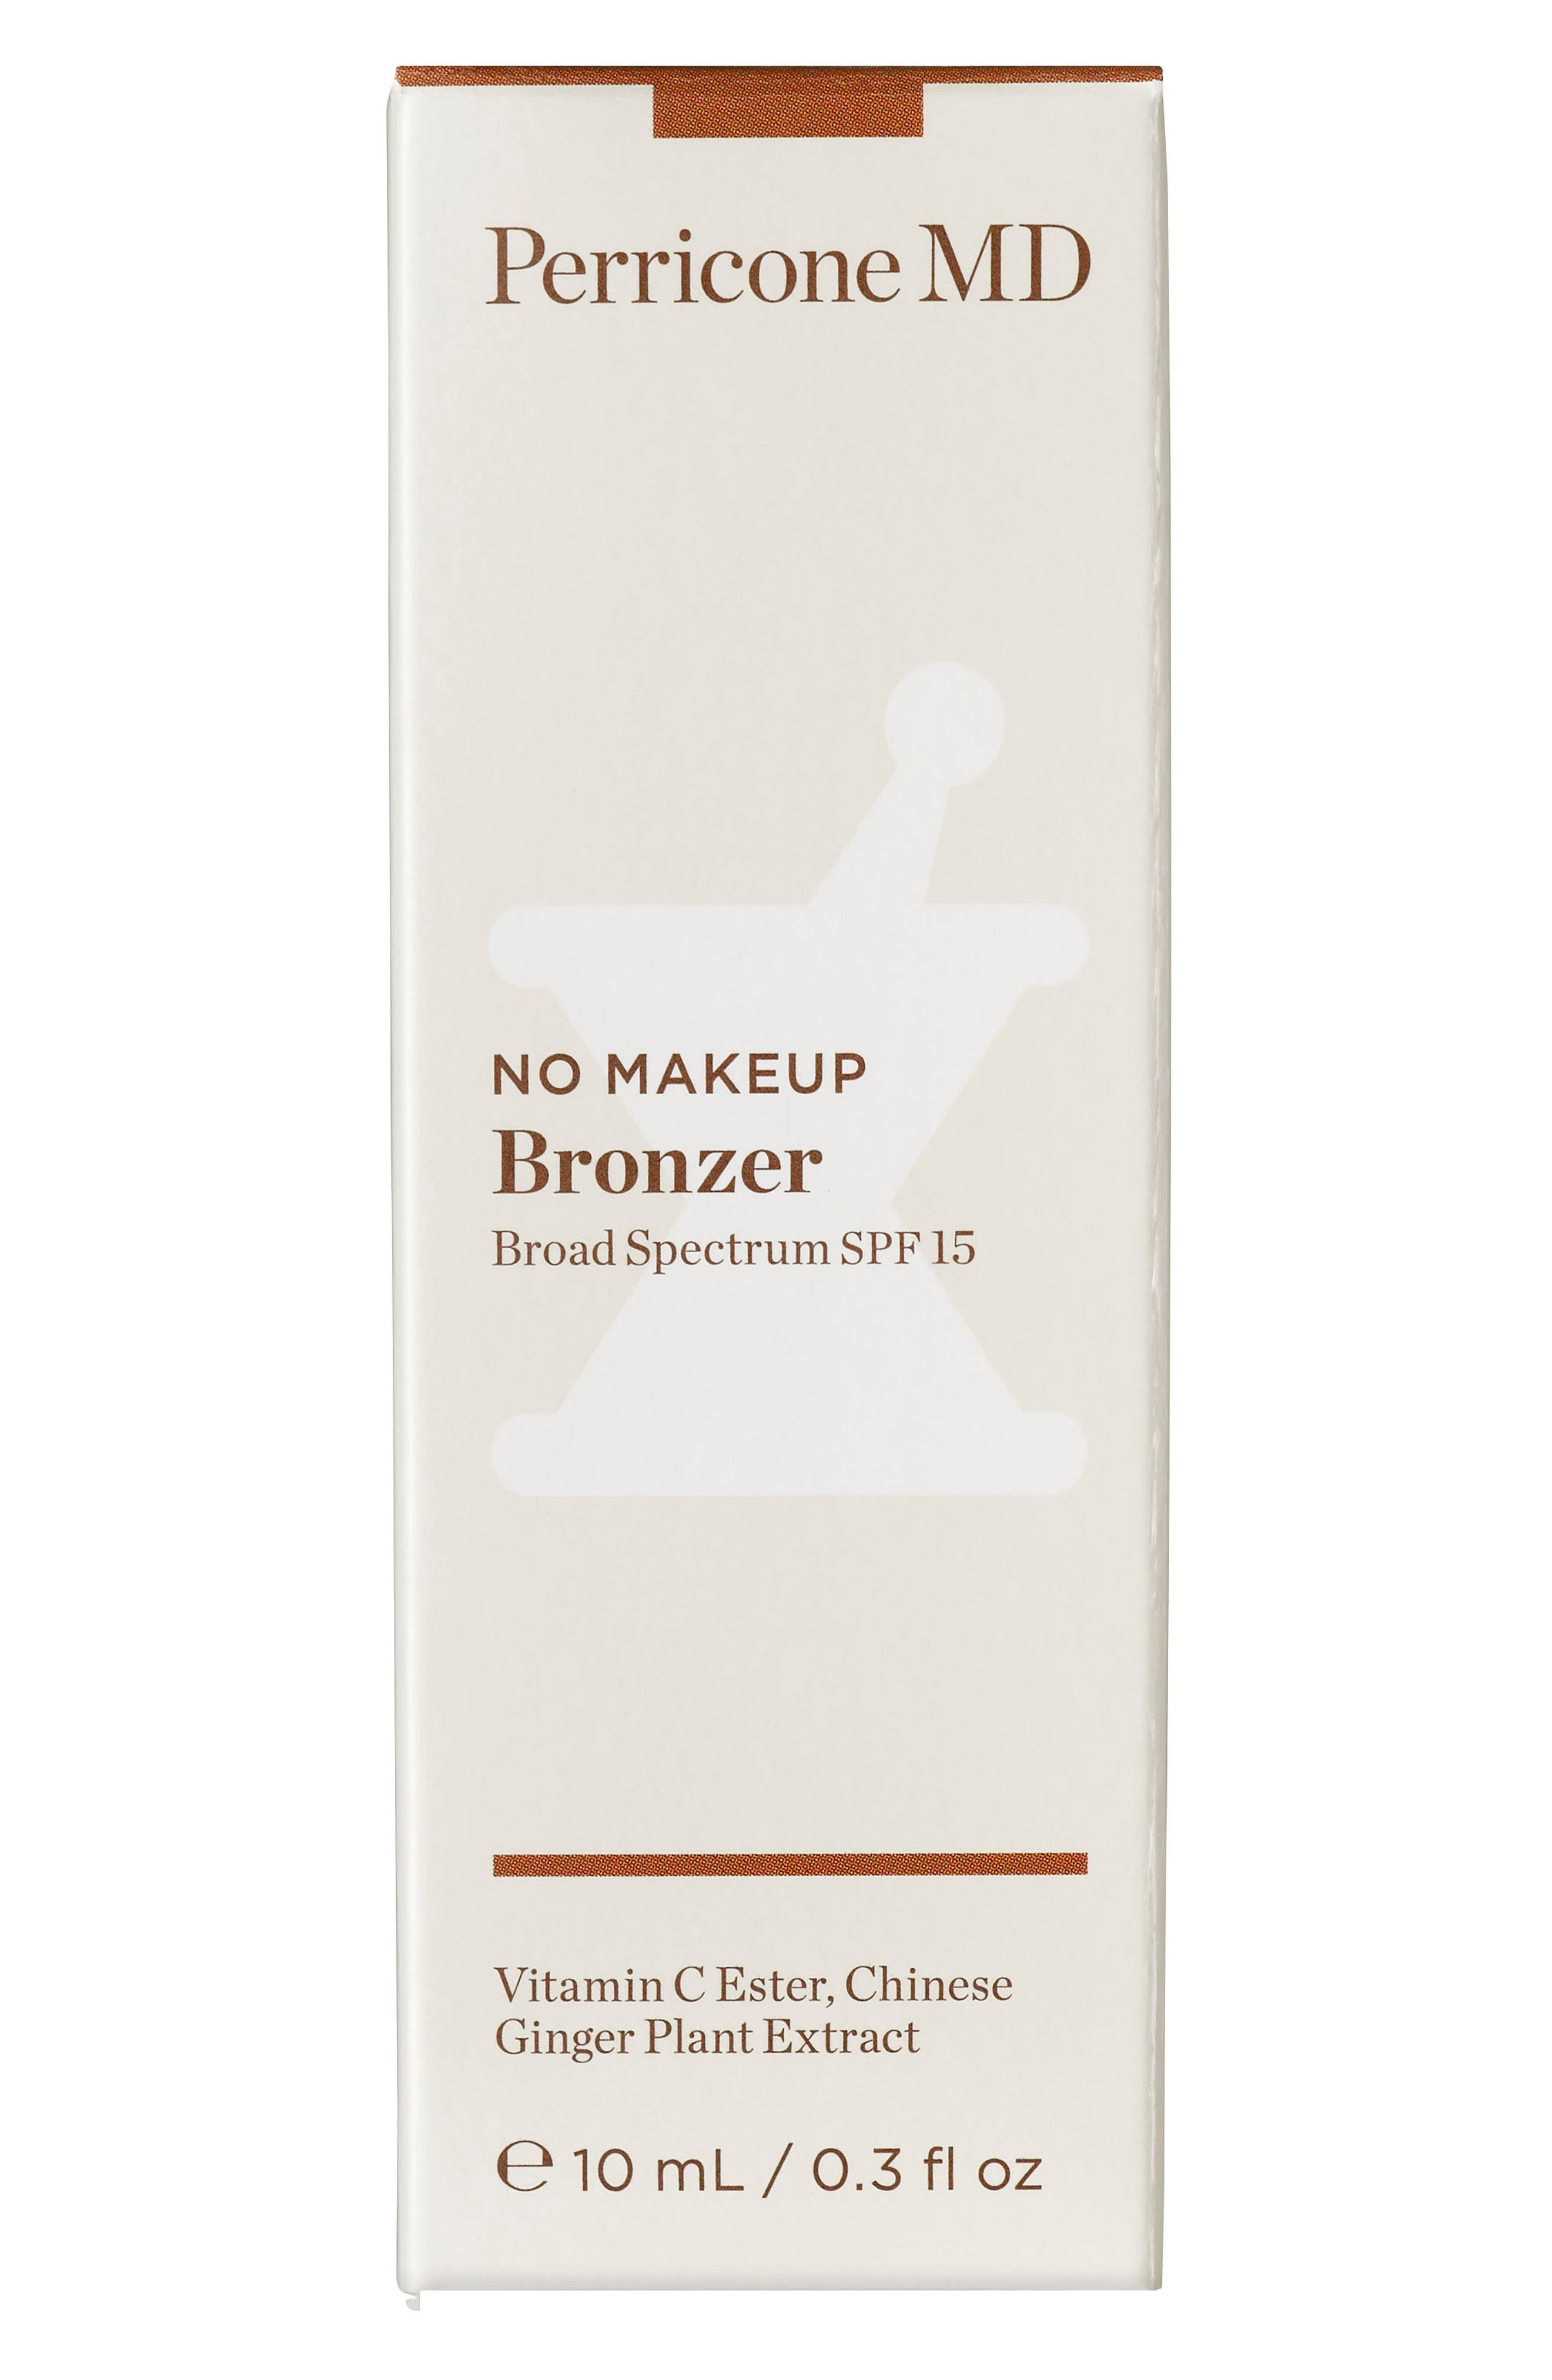 PERRICONE MD, No Makeup Bronzer Broad Spectrum SPF 15, Alternate thumbnail 3, color, 000